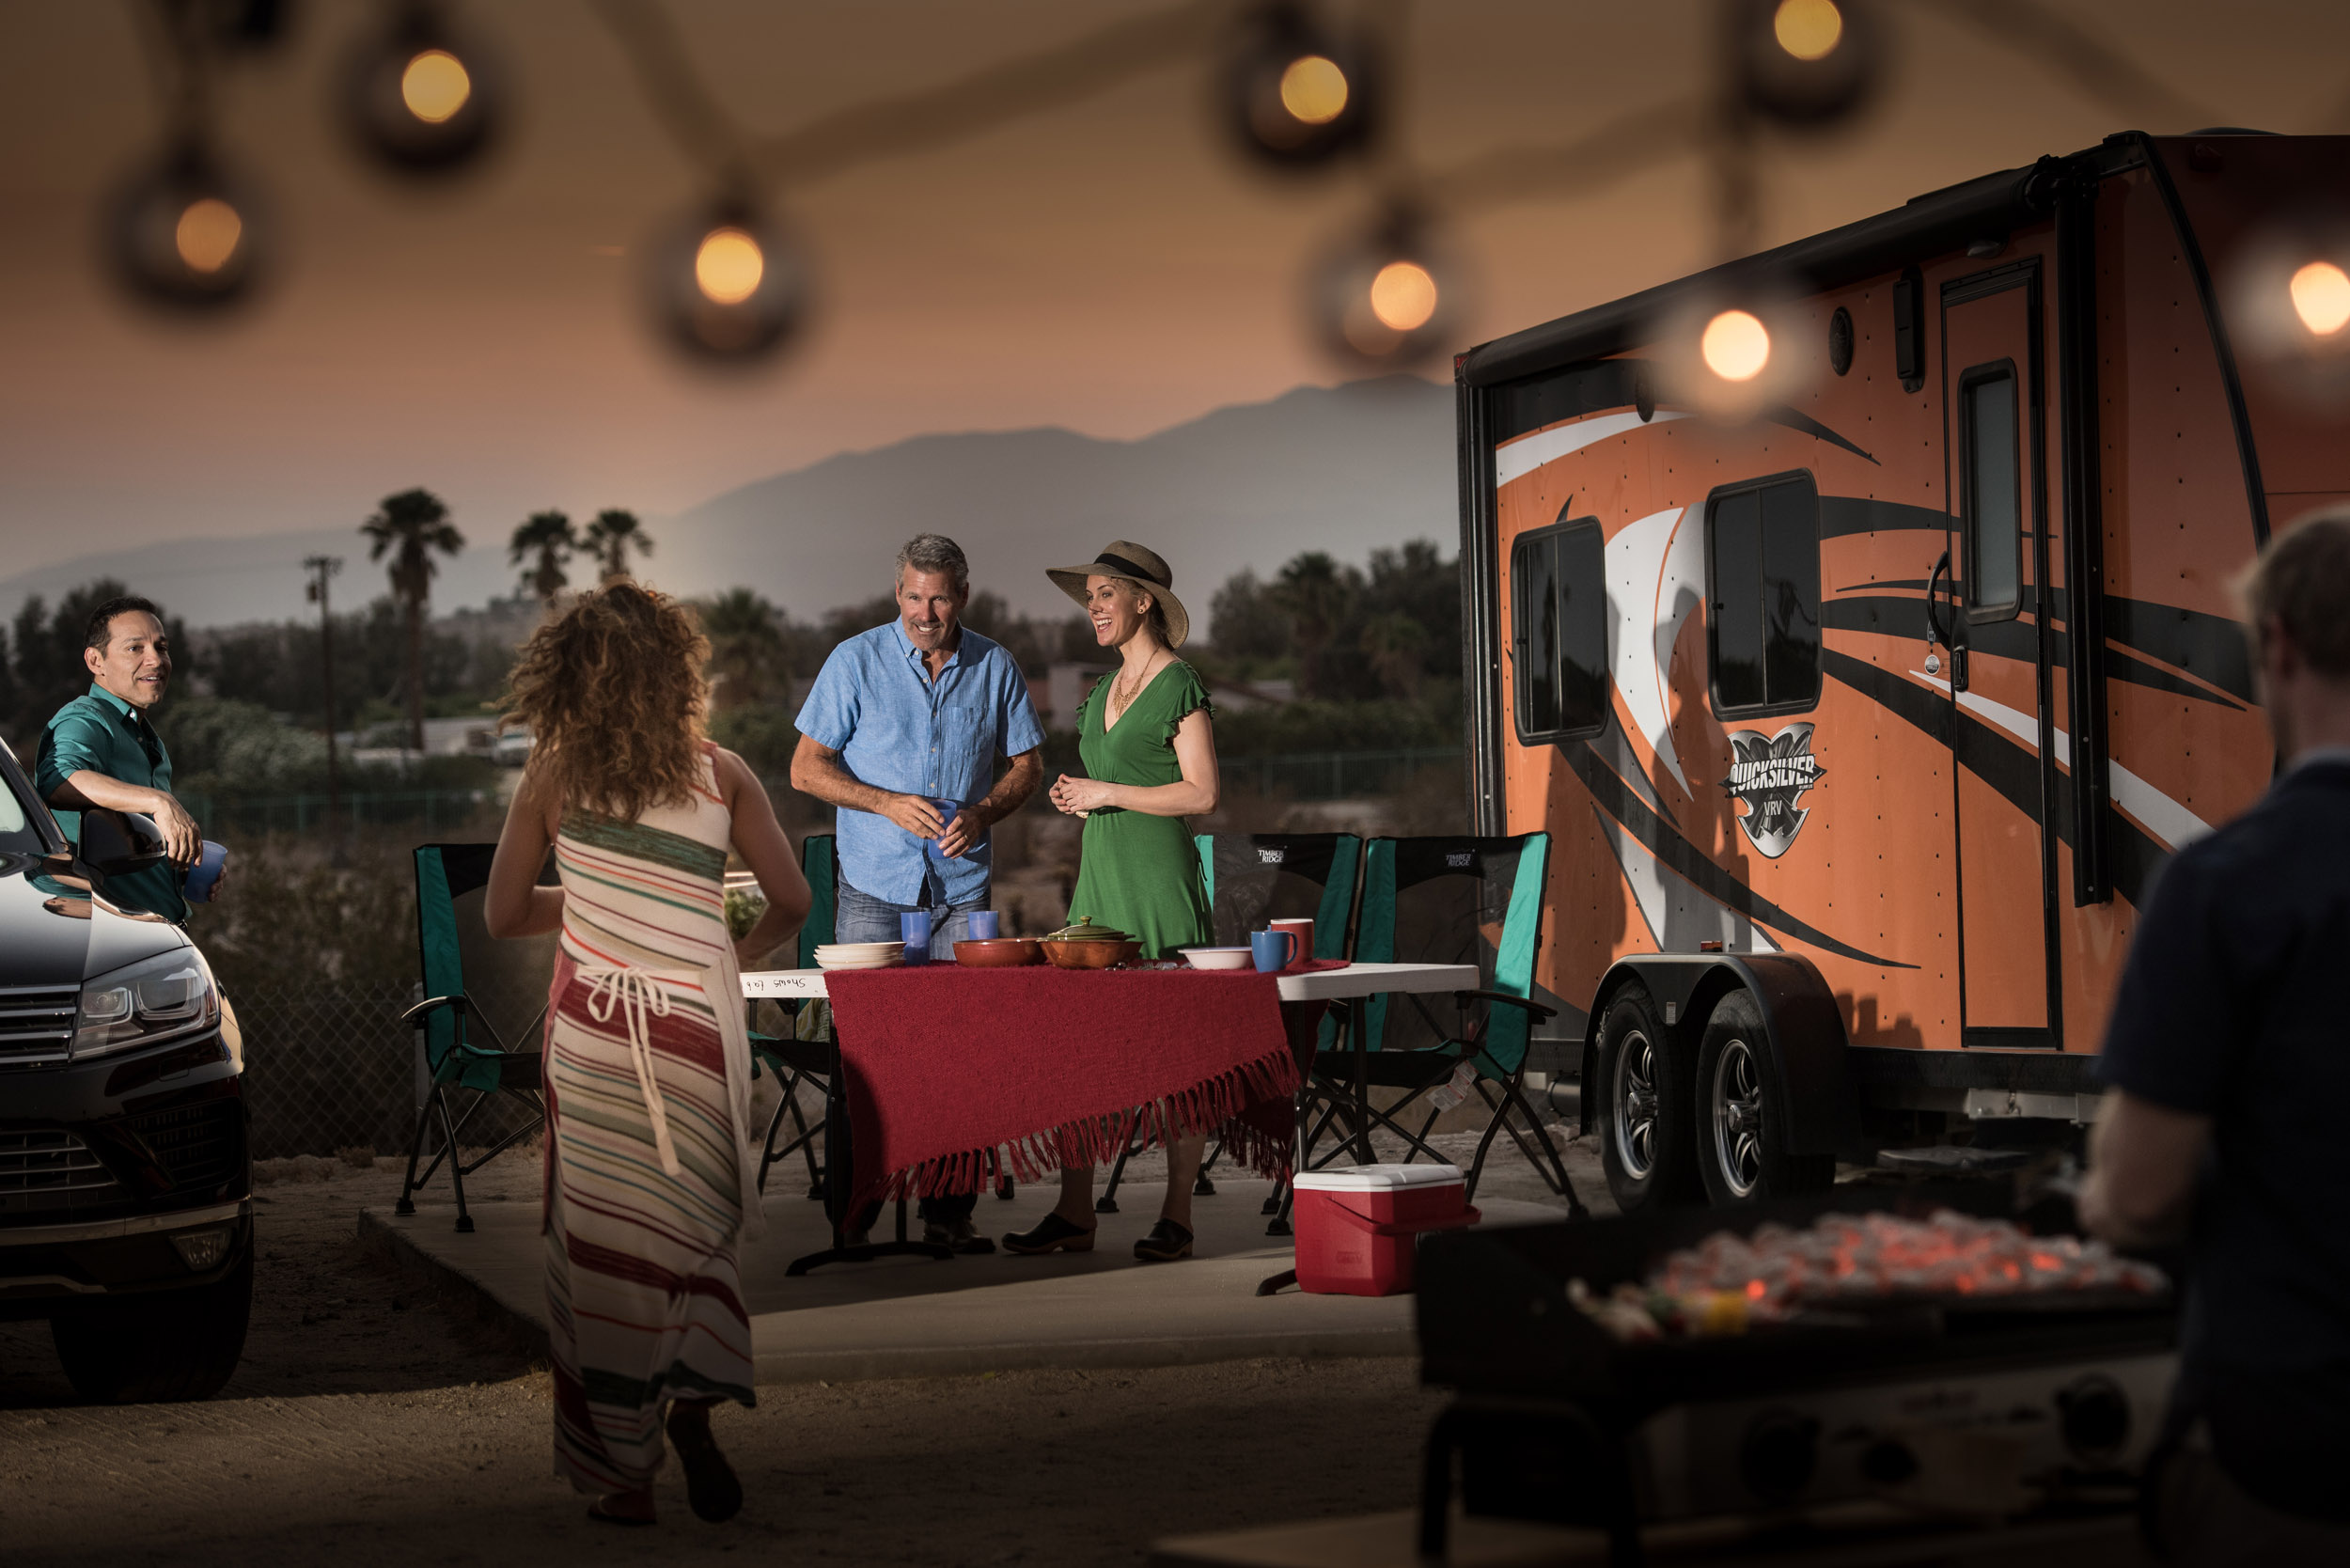 rv-park-friends-palm-springs-california.jpg